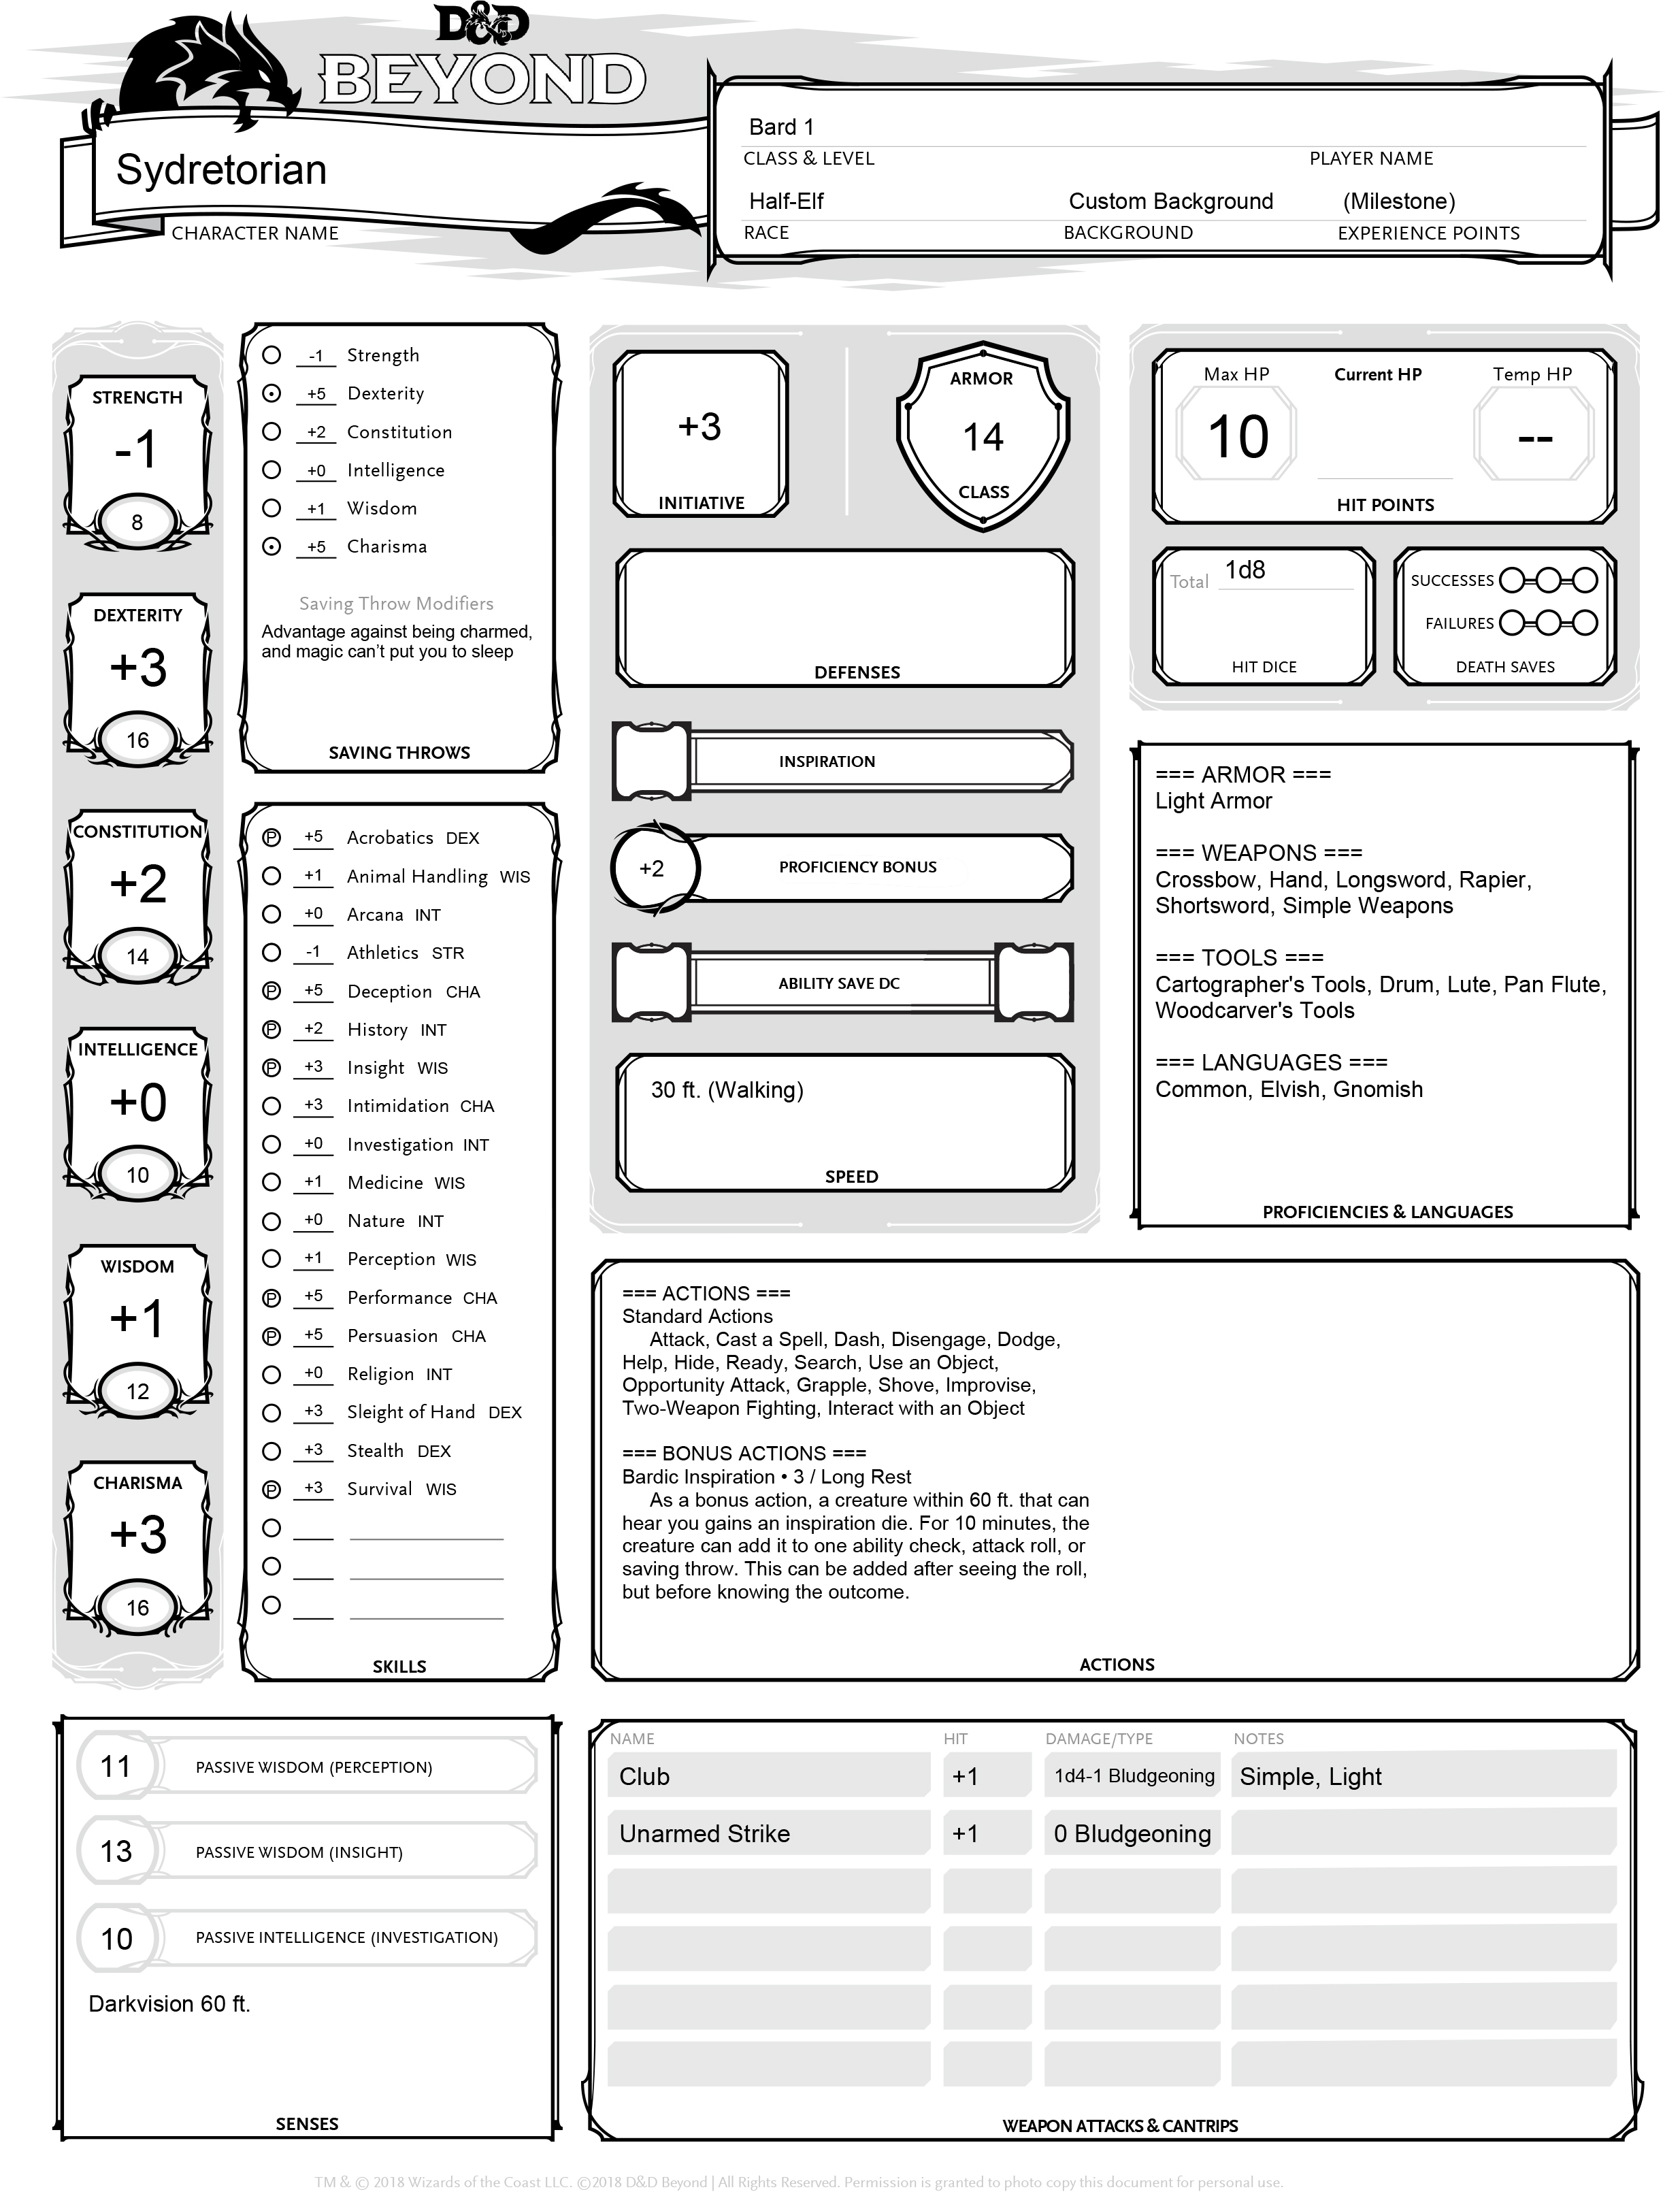 Sydretorian's Character Sheet, courtesy of DNDBeyond.com